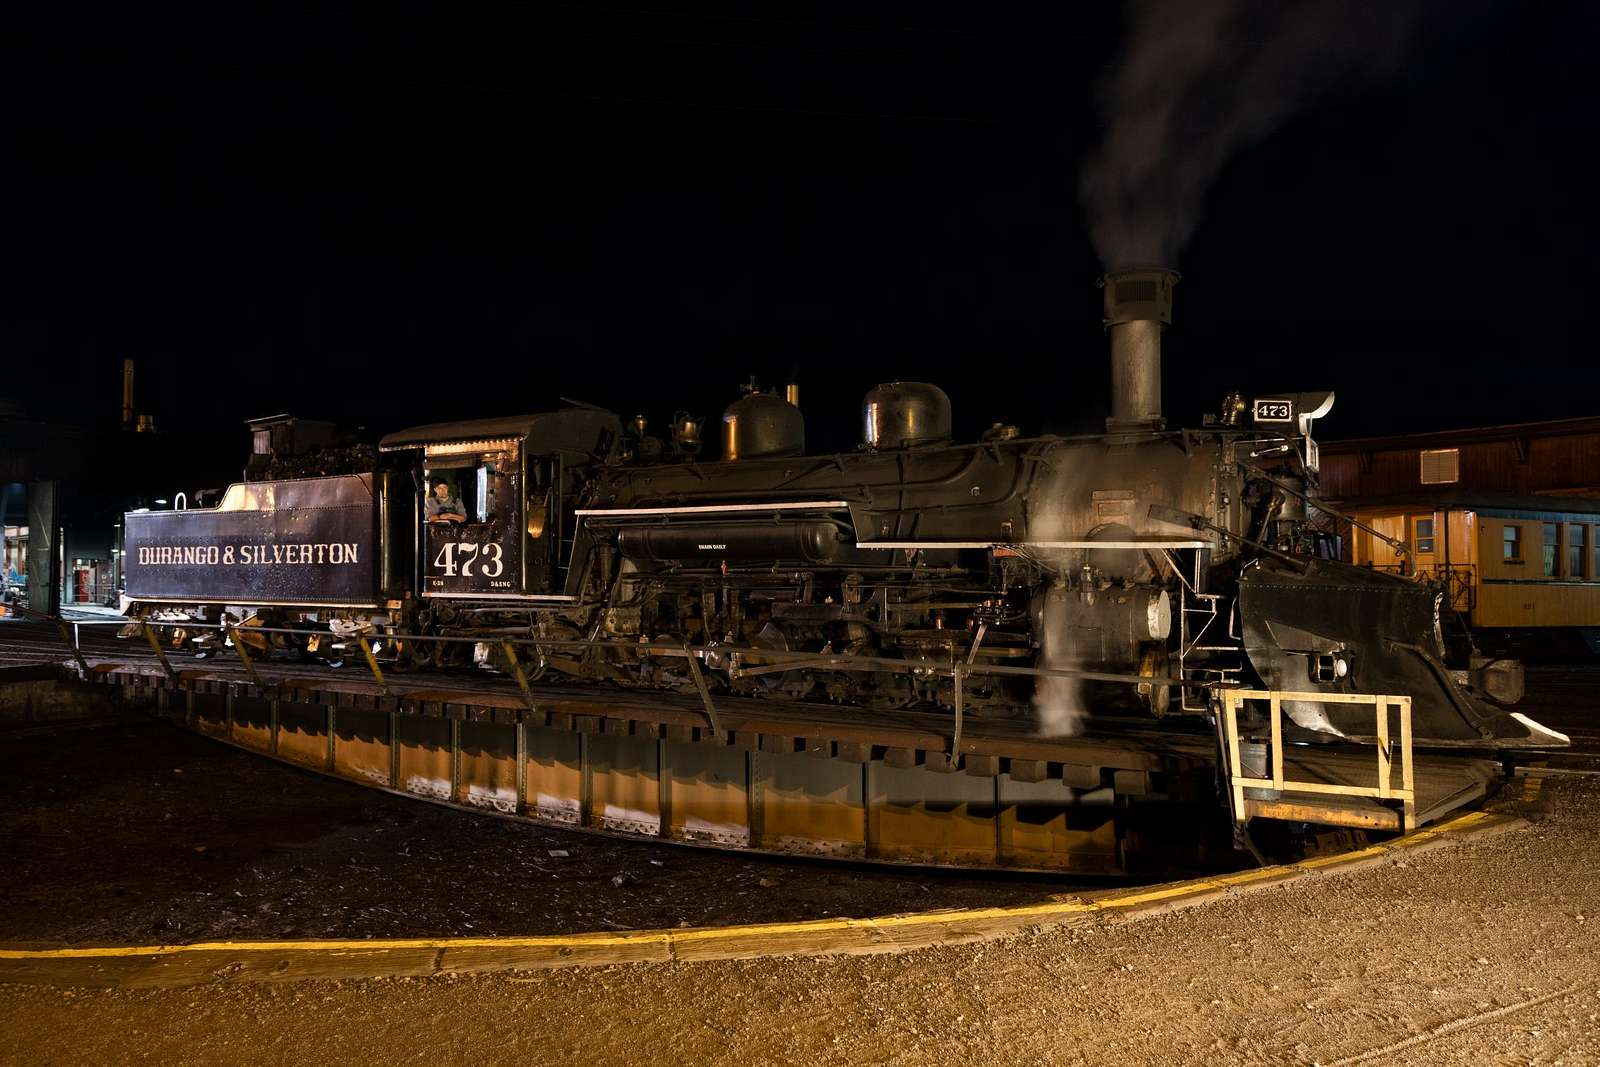 Steam locomotive and coal tender in on a roundhouse turntable in the trainyard of the Durango & Silverton Narrow Gauge Scenic Railroad in Durango, Colorado